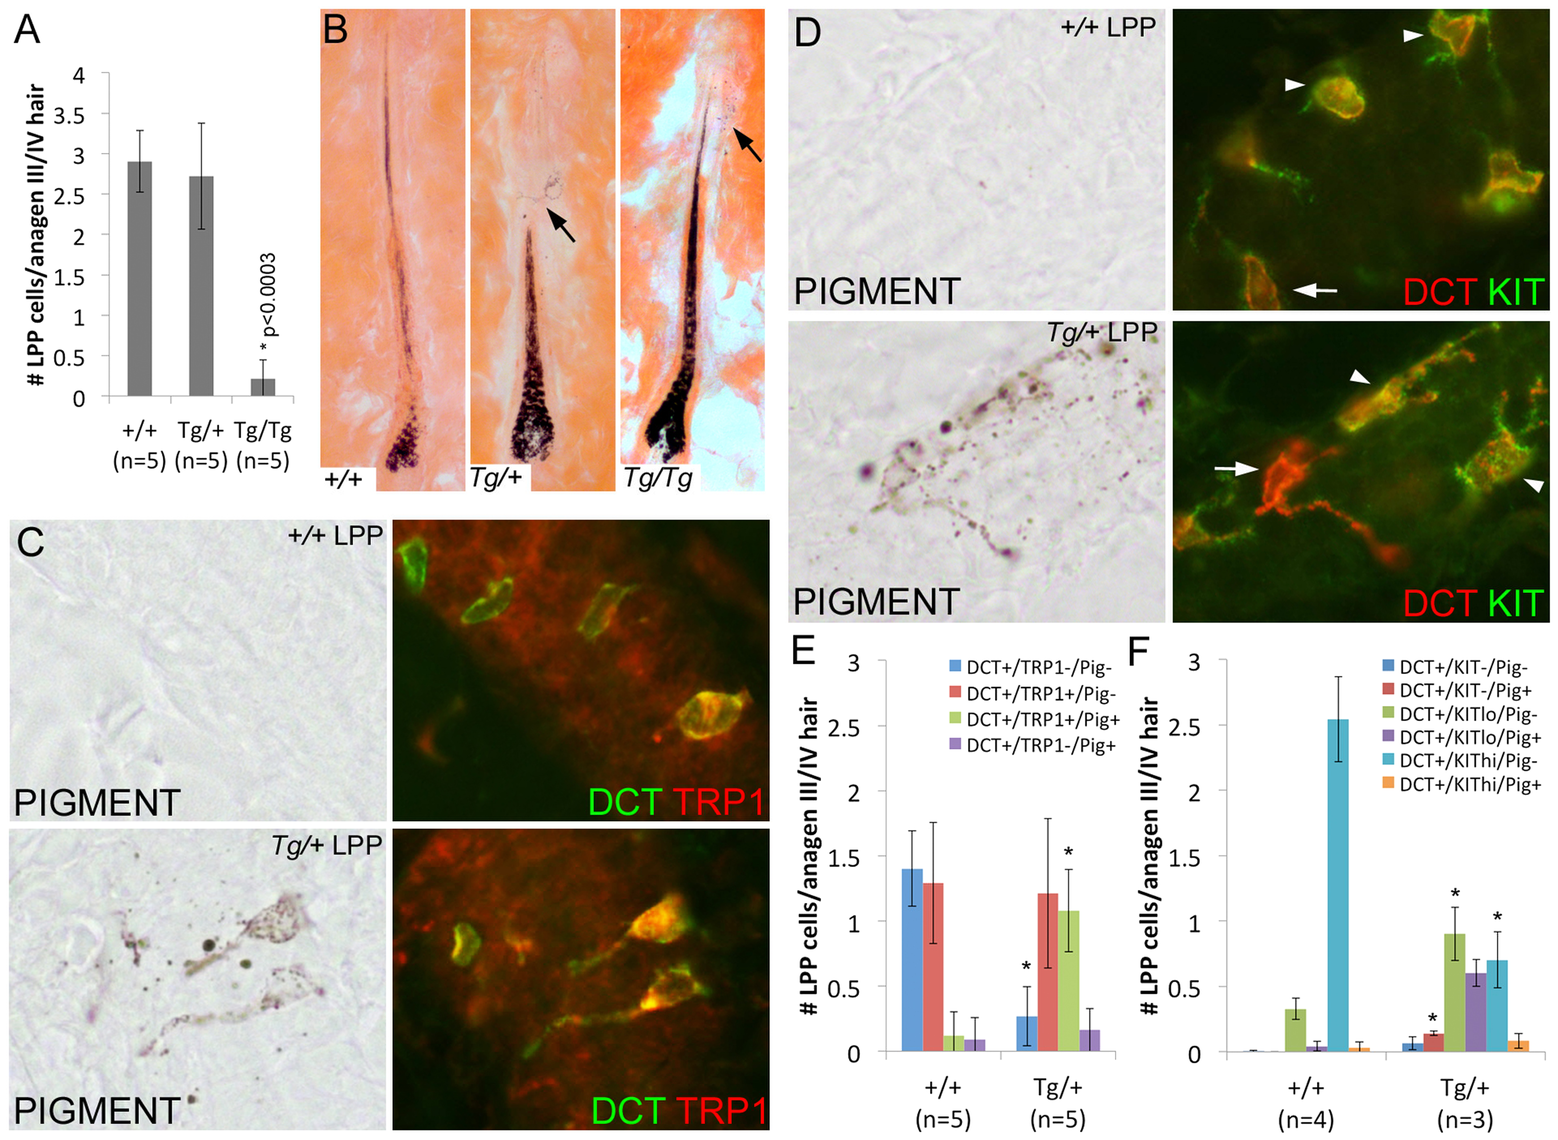 Overexpression of <i>Sox10</i> results in premature differentiation of LPP melanocytes in anagen hairs.